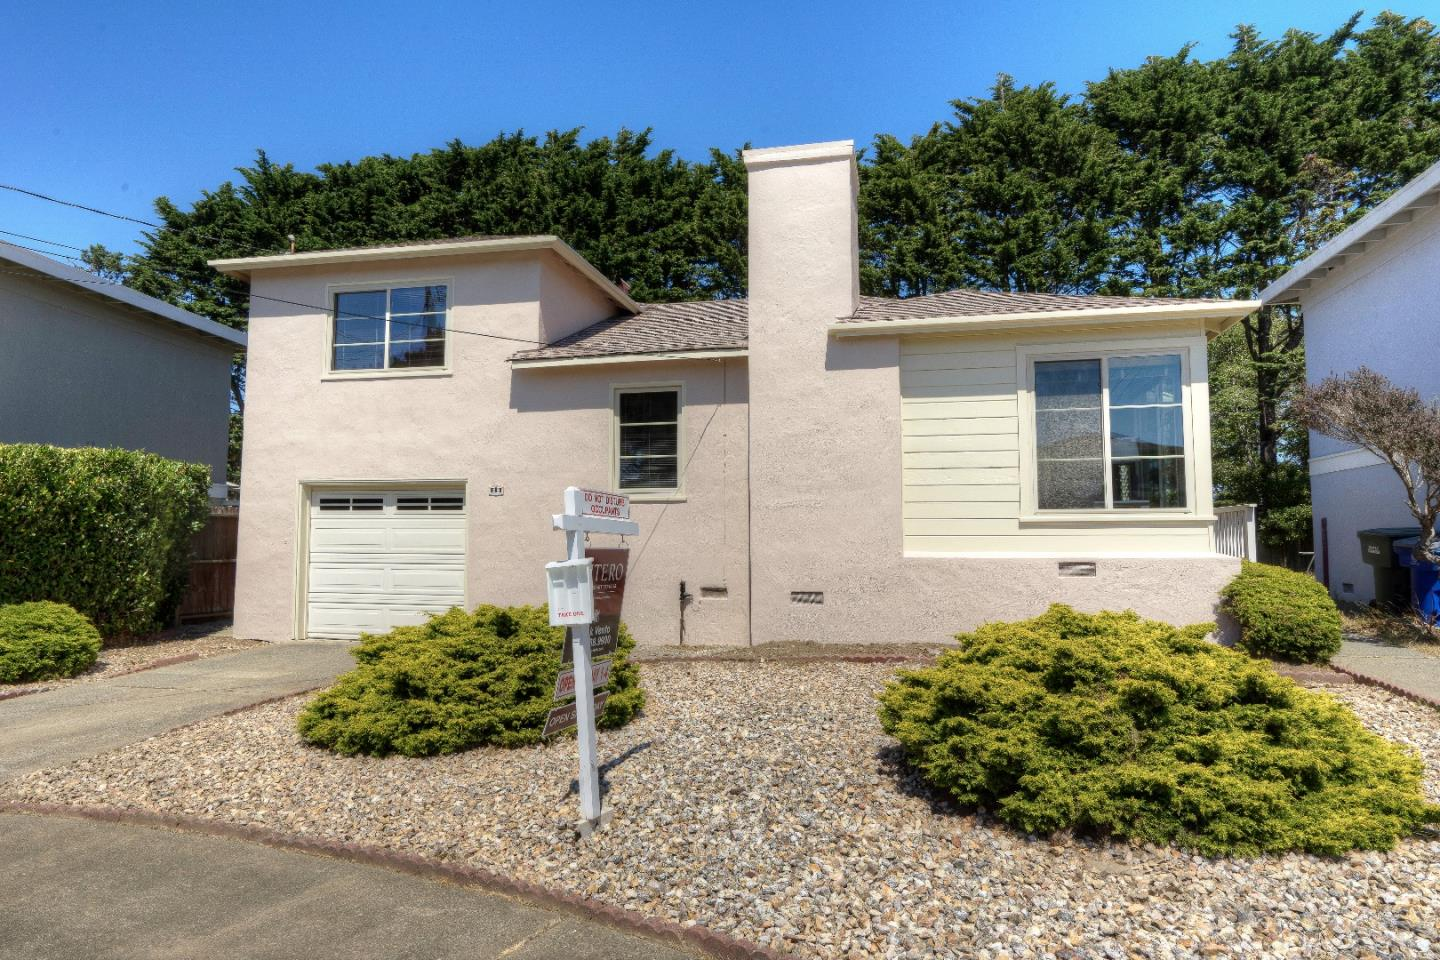 Additional photo for property listing at 25 Conrad Court  South San Francisco, Kalifornien 94080 Vereinigte Staaten